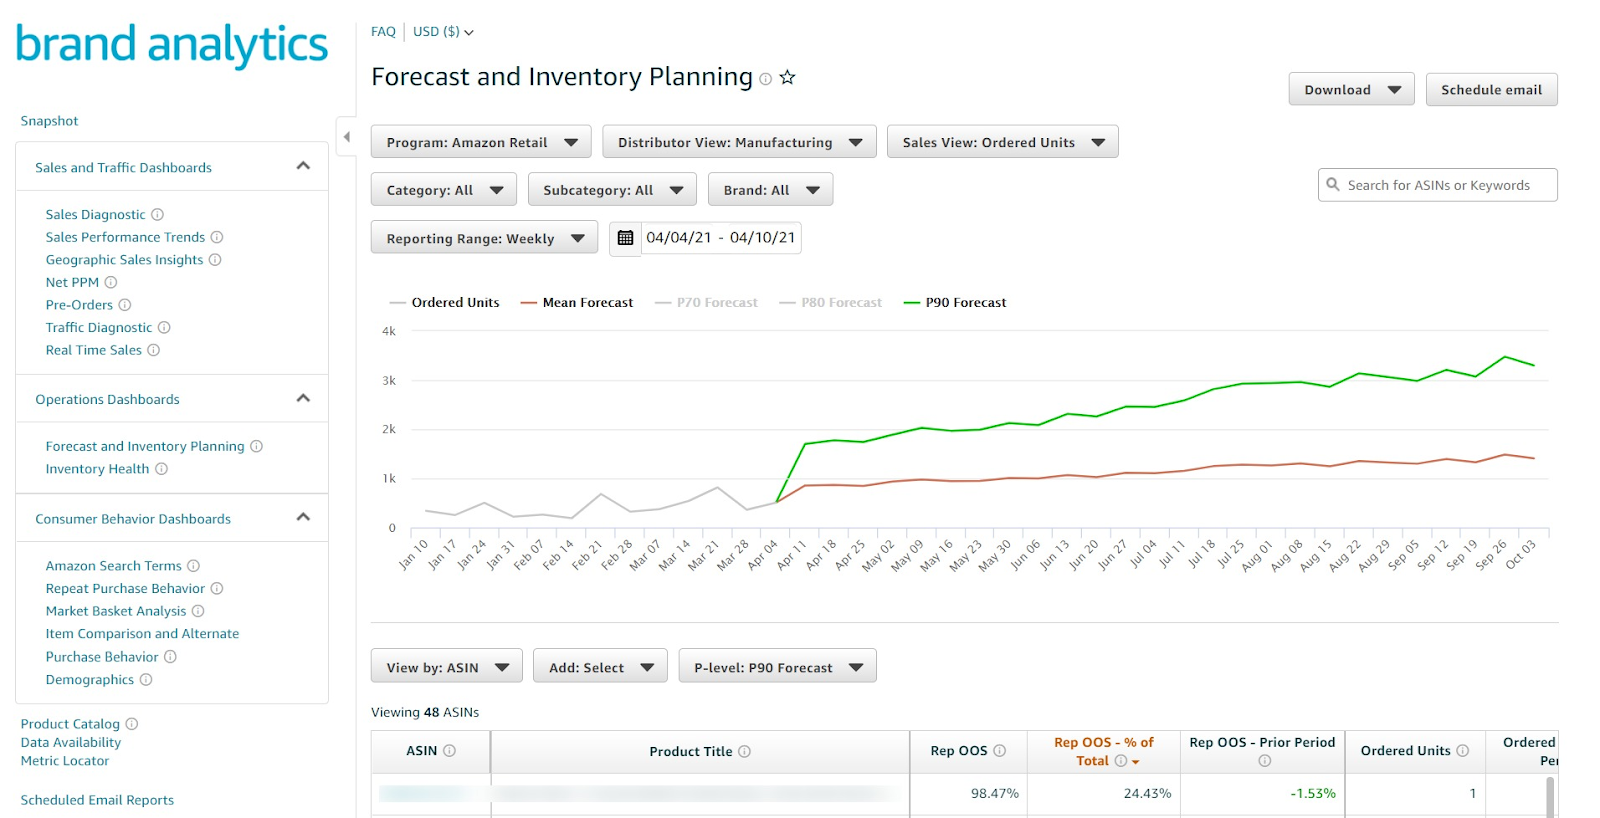 Forecast and Inventory Planning - P90 Forecast Dashboard